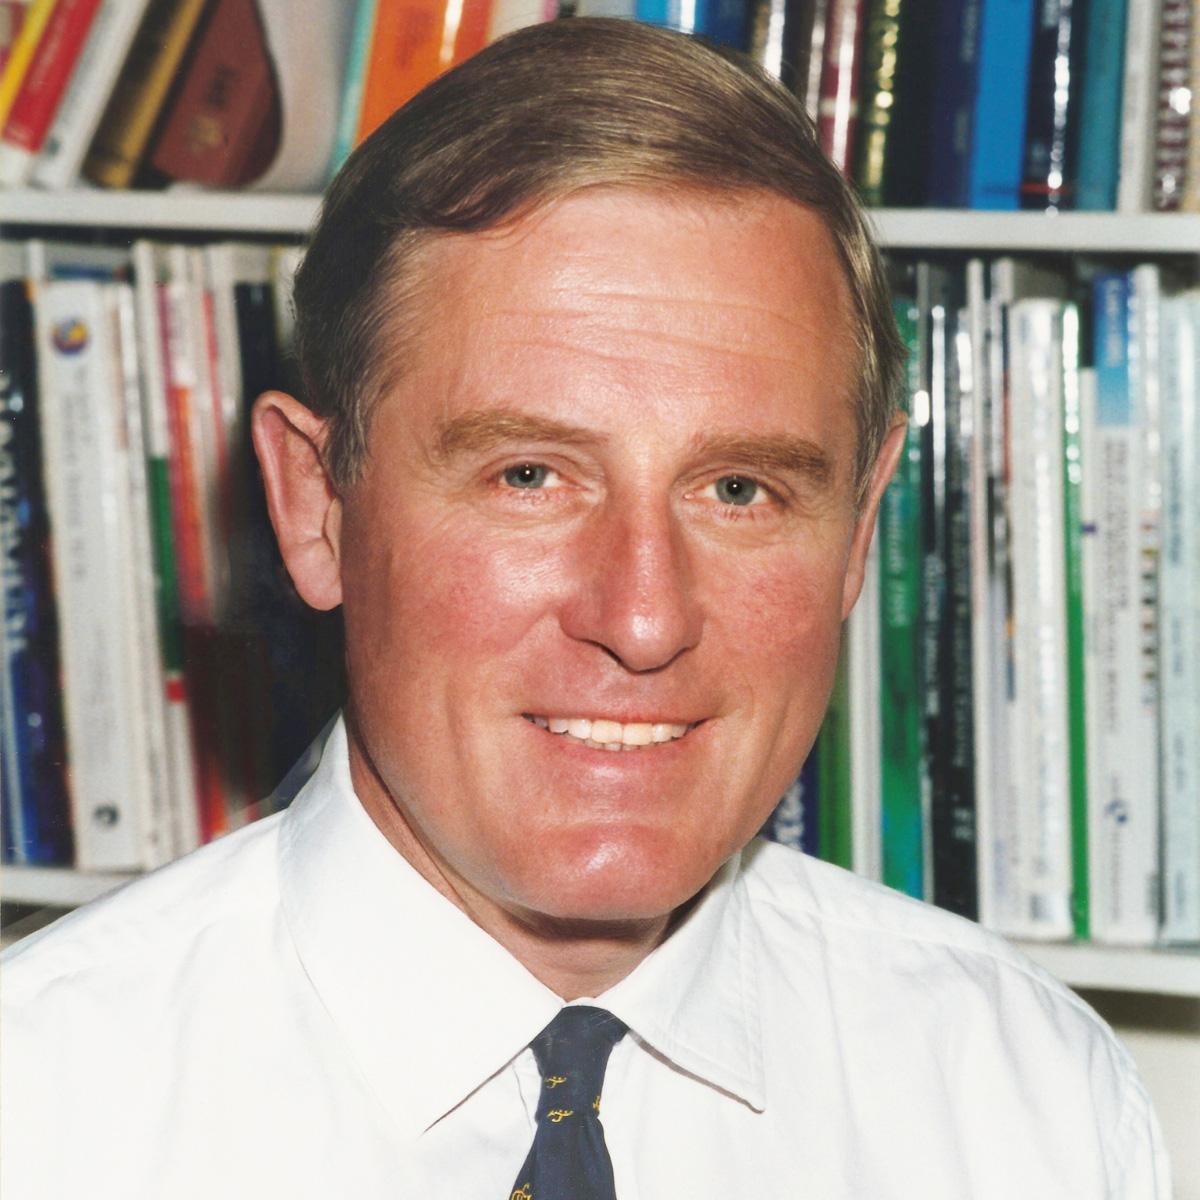 In loving memory of Professor John Hermon-Taylor, gastroenterologist and inventor of the Crohn's MAP Vaccine and in clinic test.